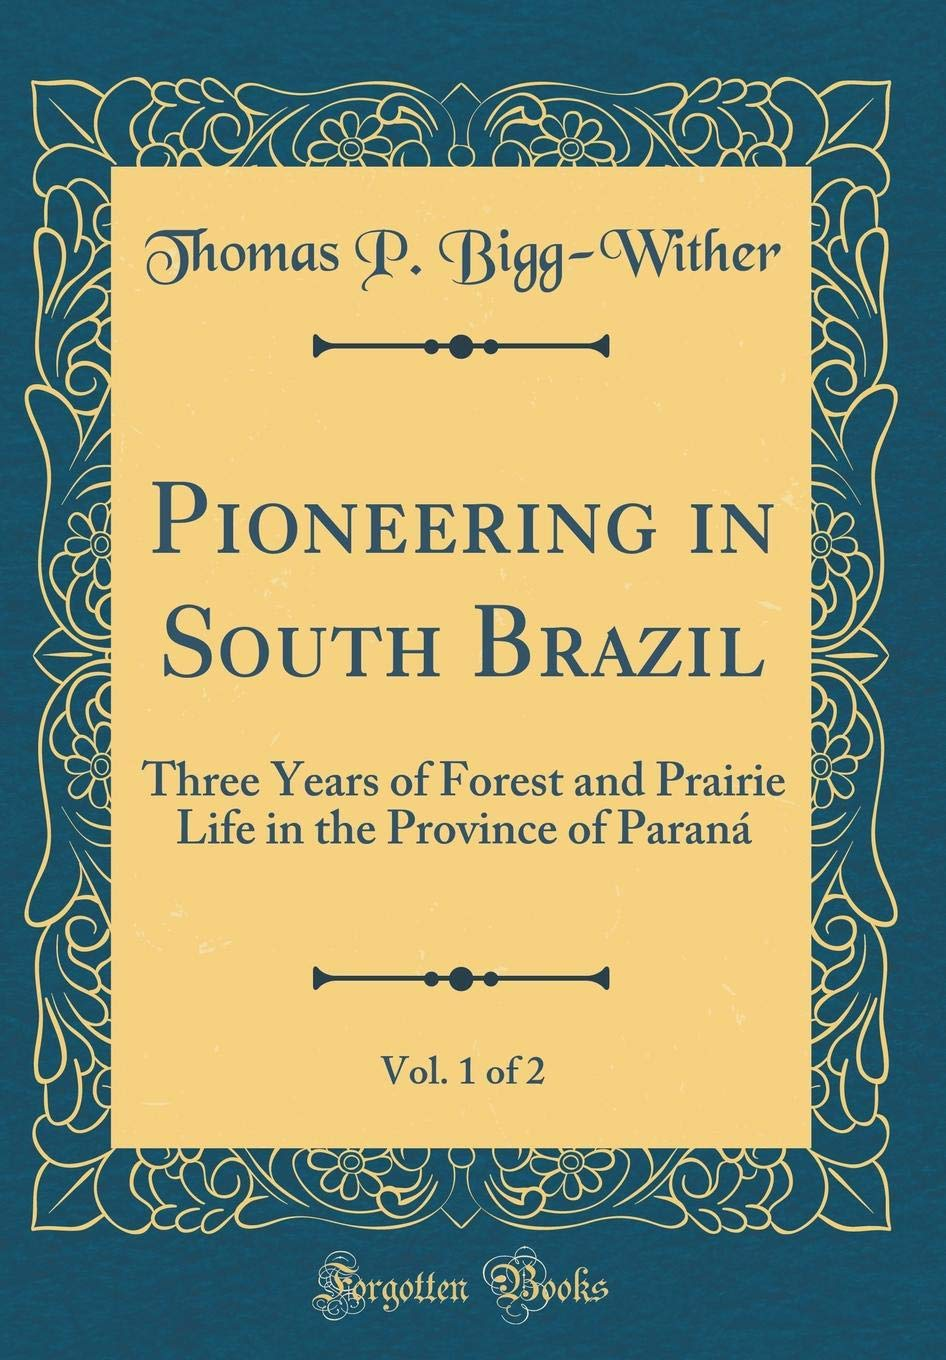 Pioneering in South Brazil, Vol. 1 of 2: Three Years of Forest and Prairie Life in the Province of Paraná (Classic Reprint) pdf